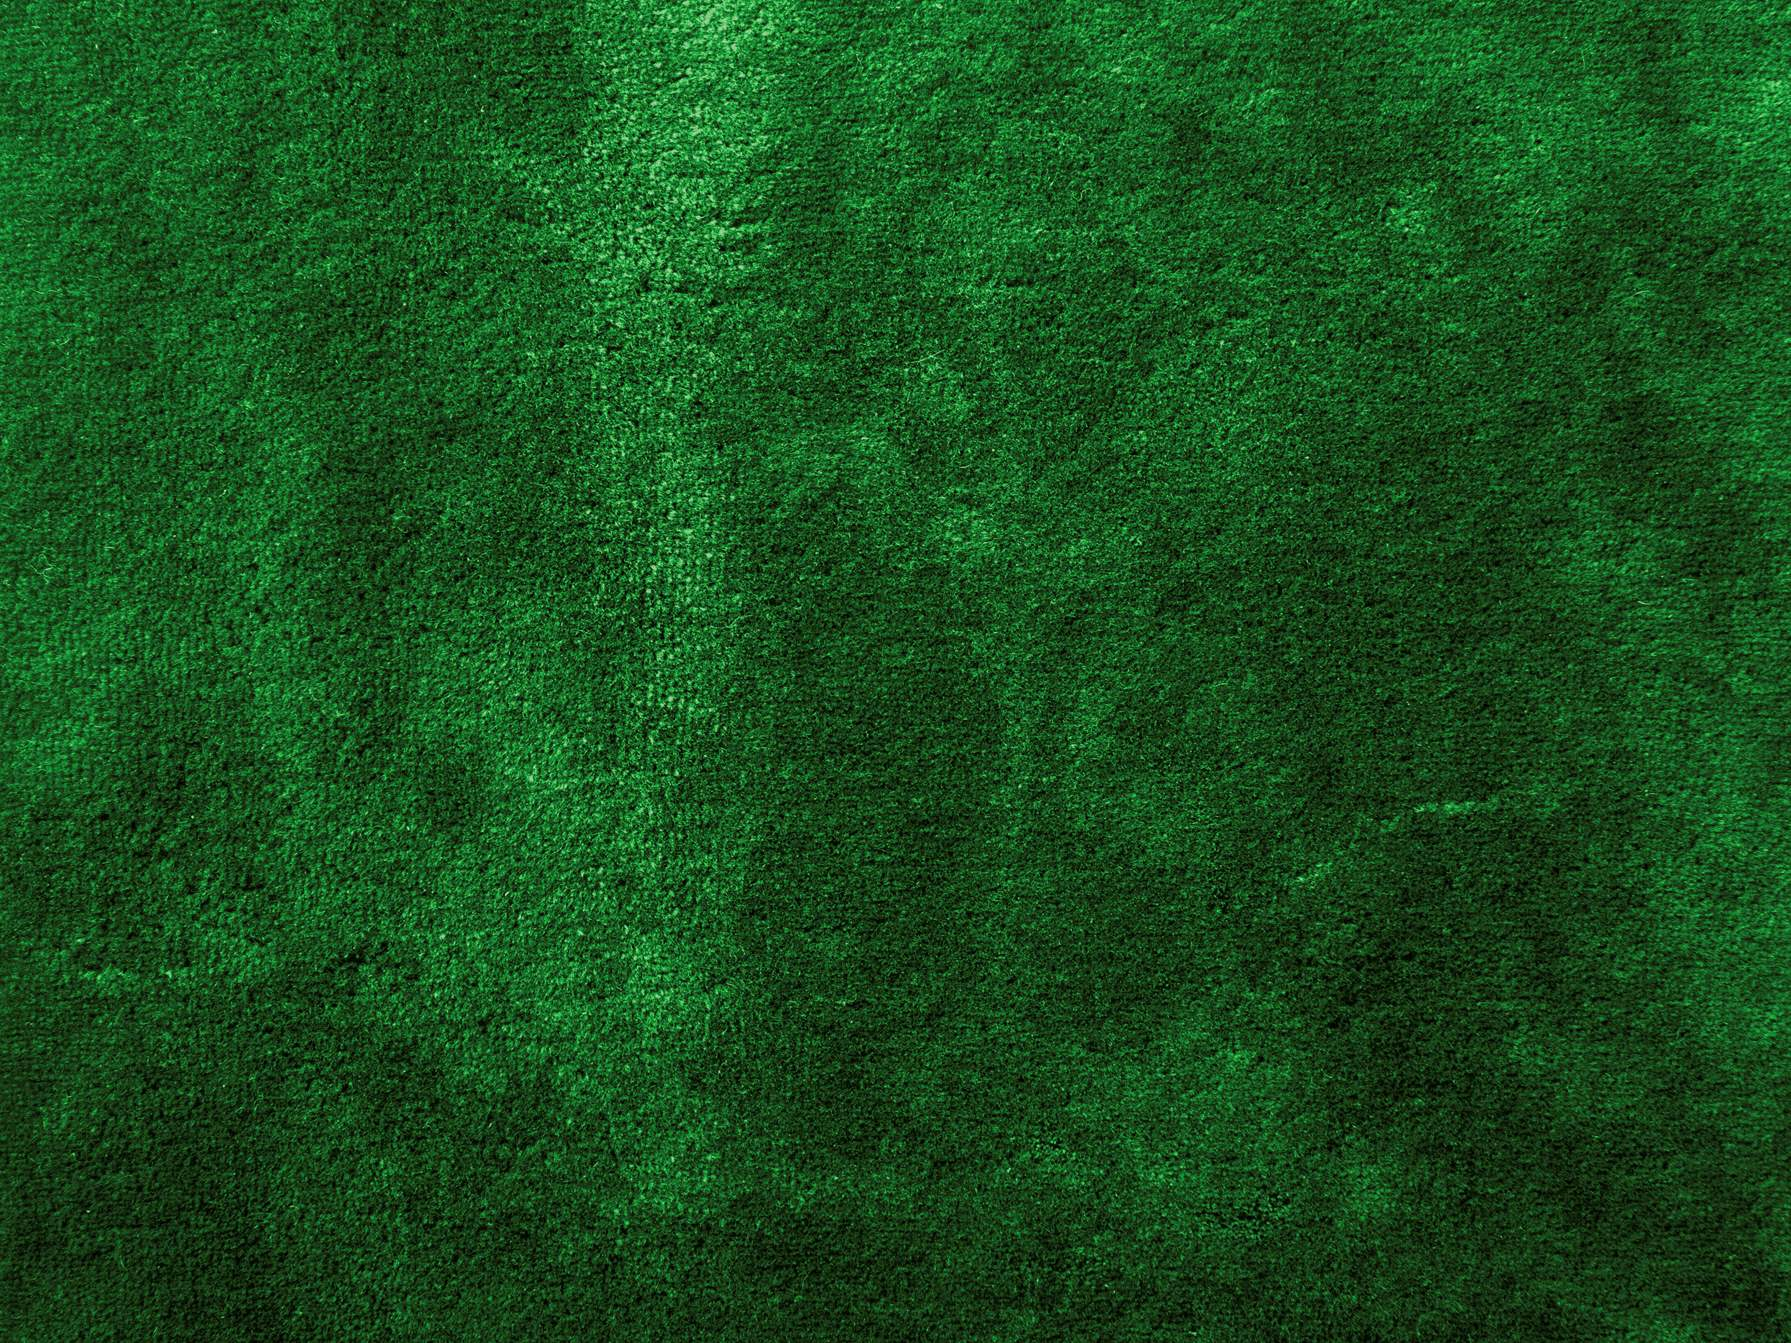 Green Velvet Texture Background Photohdx